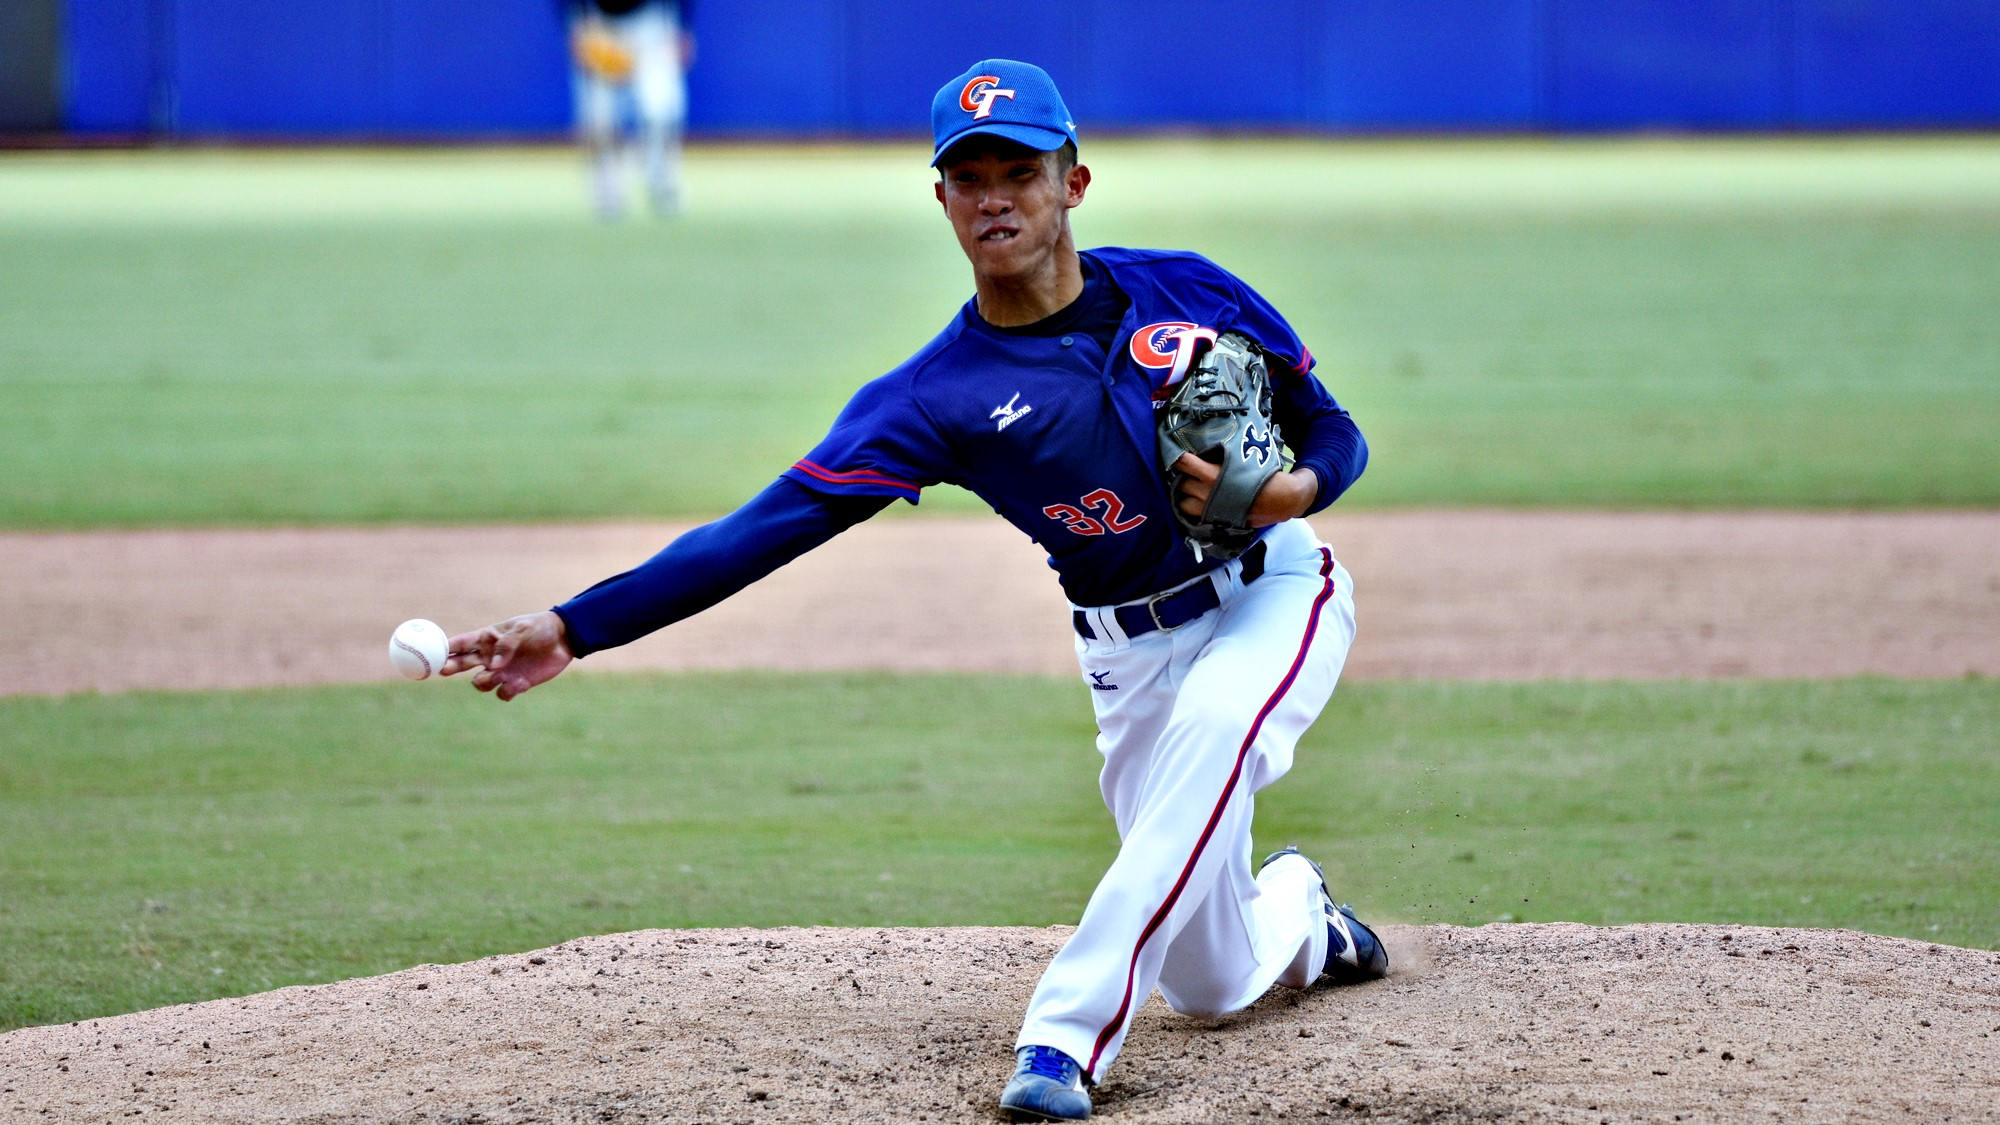 Chinese Taipei starter Chen Liang Chi took his effort into the ninth, despite going well over the 100 pitch limit and allowing 7 walks